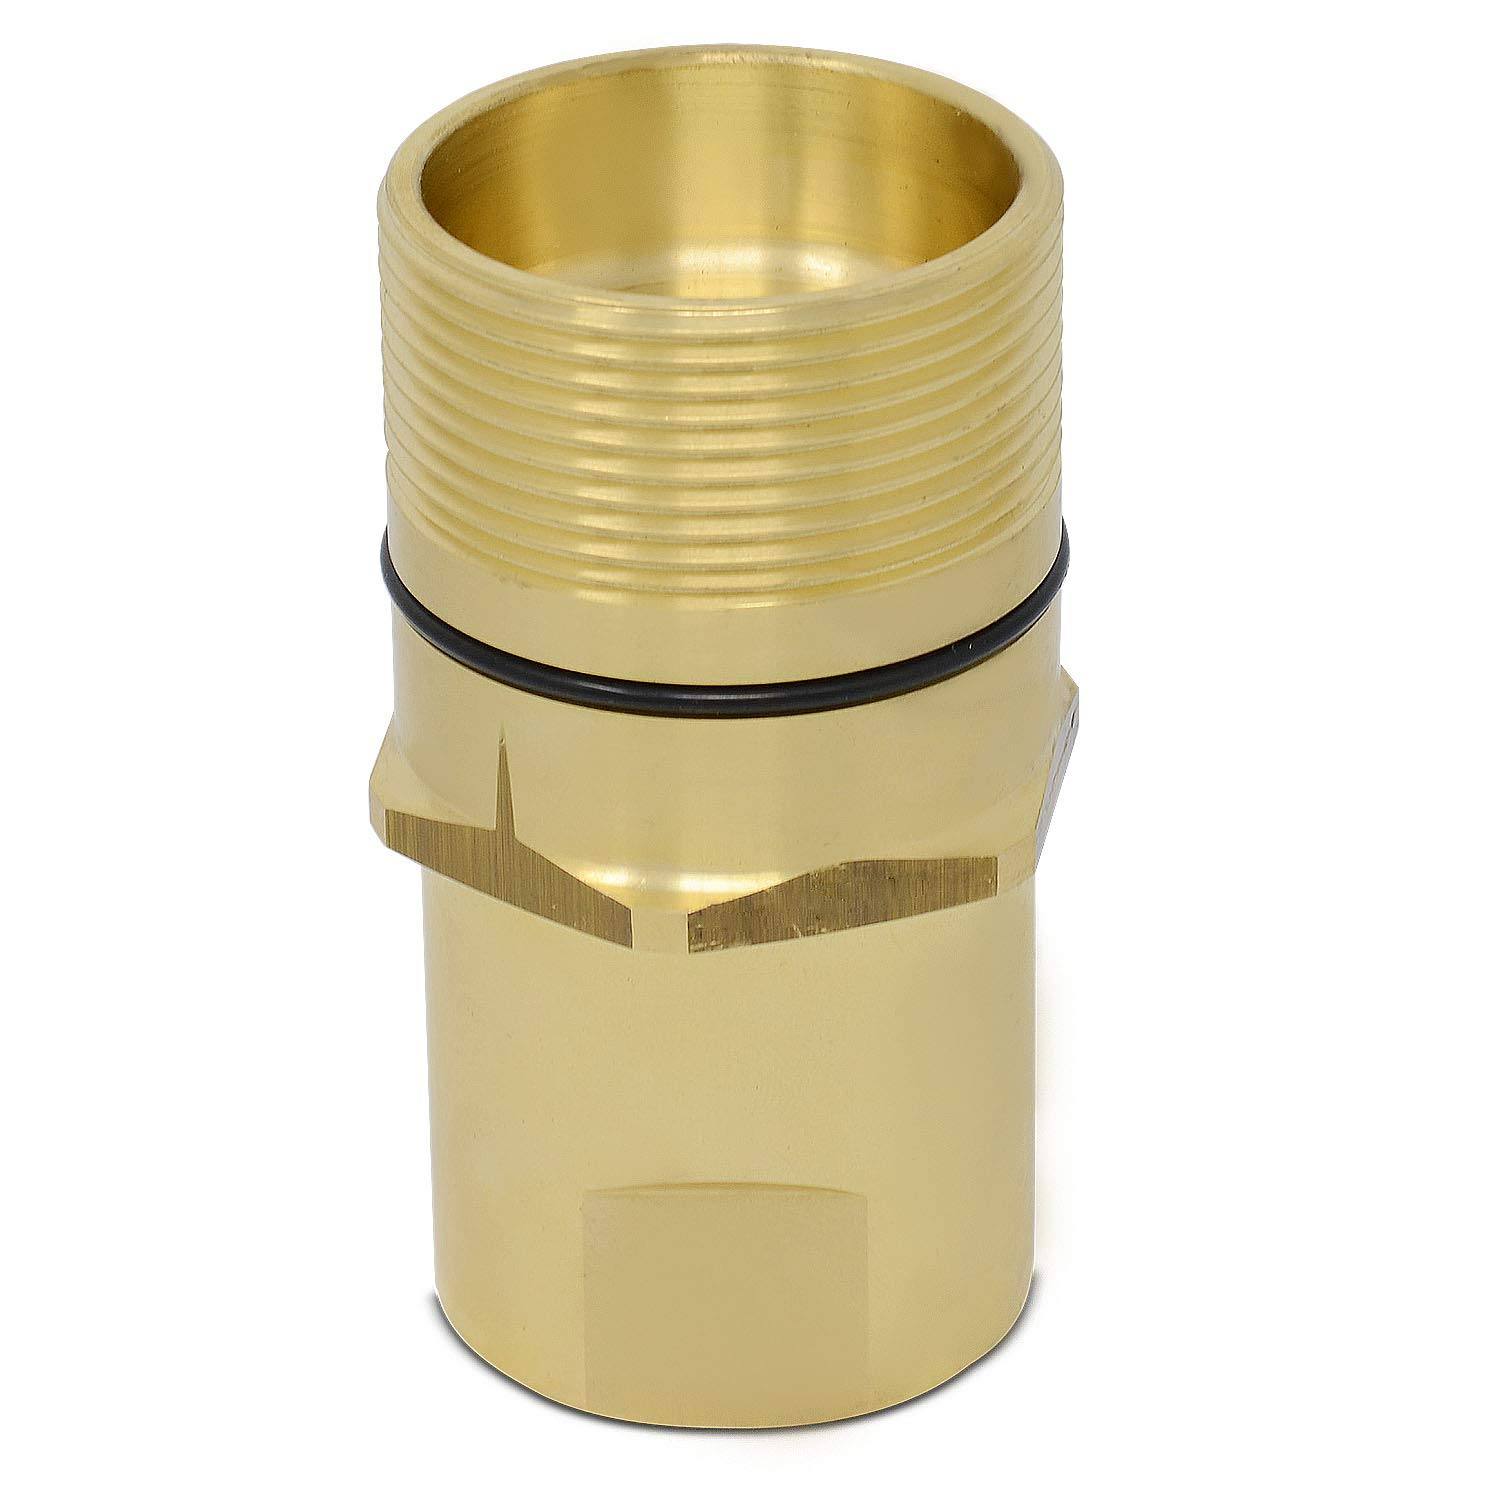 1″ NPT Wet-Line Wing Nut Hydraulic Quick Disconnect Male Coupler